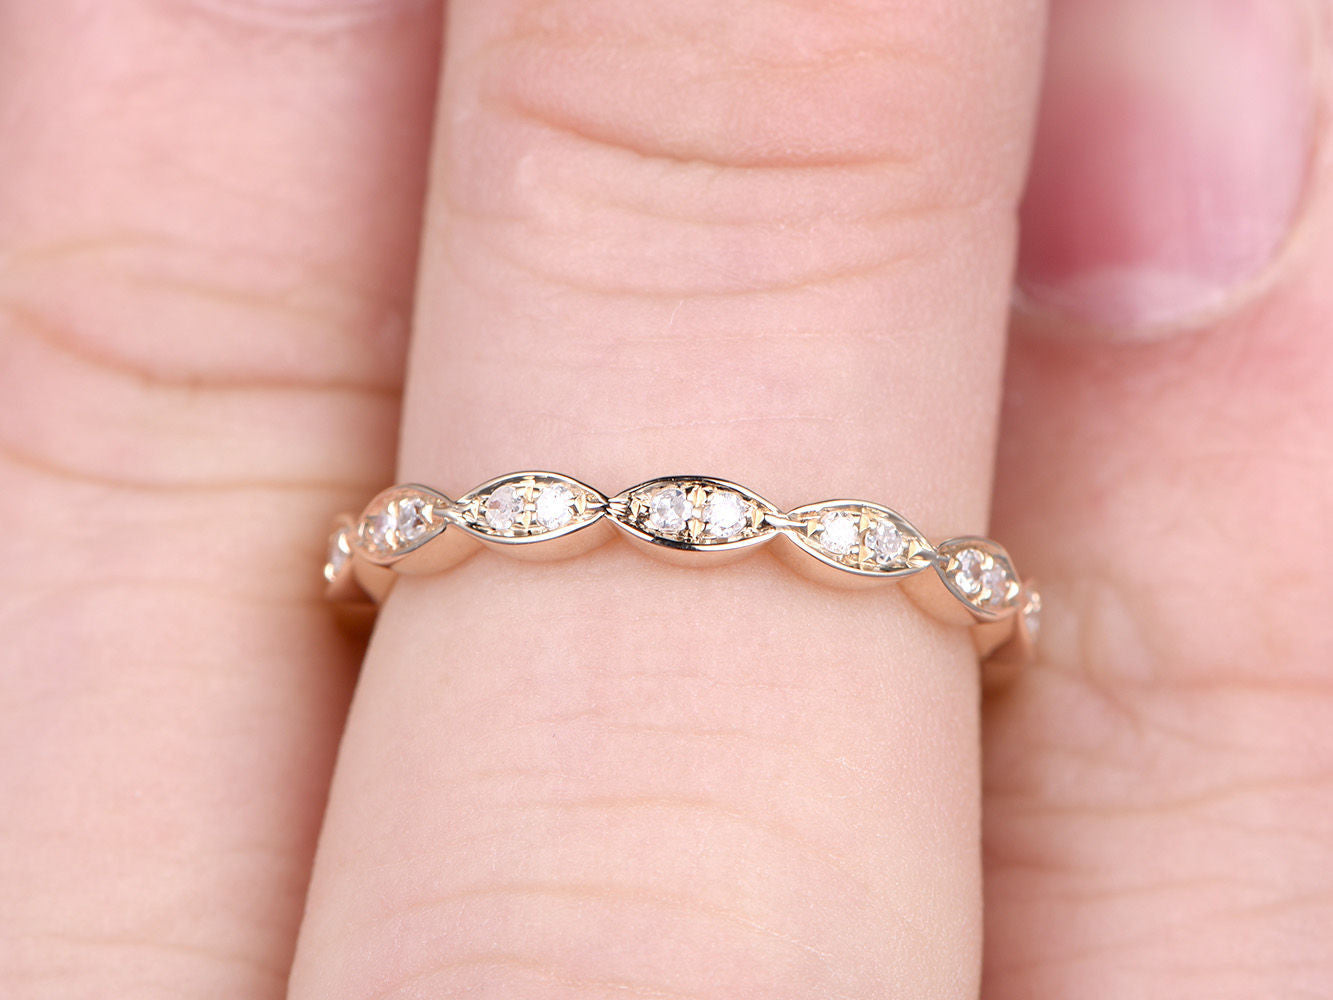 Natural Diamonds,Full Eternity Wedding Ring,Solid 14K Yellow gold,Anniversary Ring,Art deco Marquise style,stacking ring,Matching band